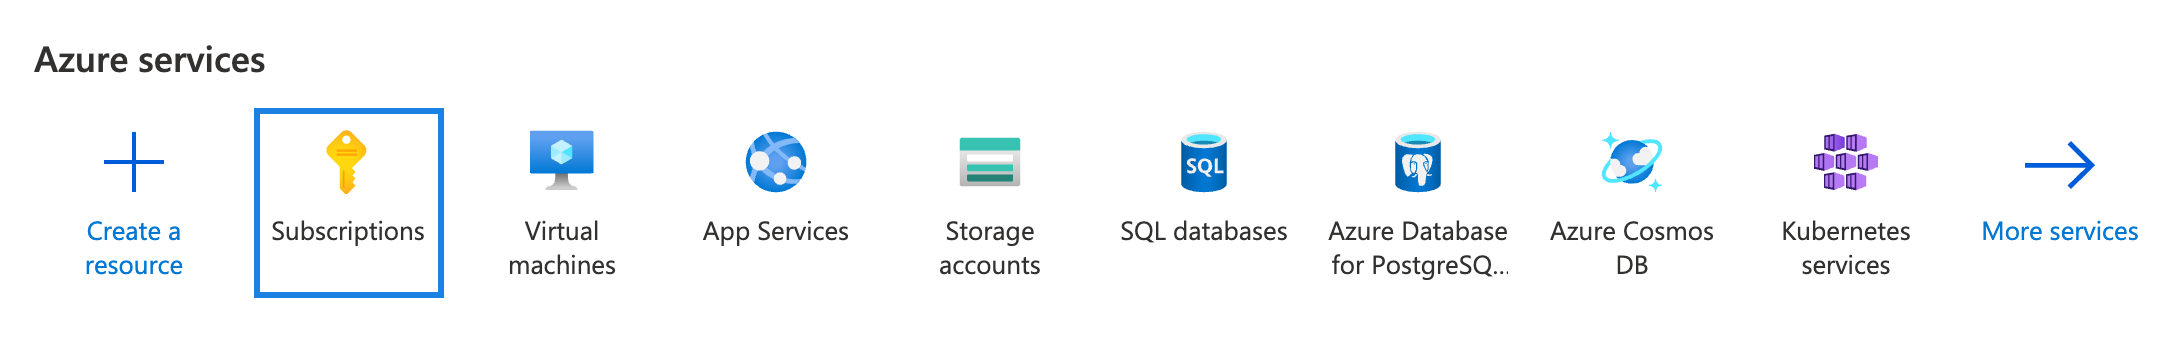 Azure services menu with the Subscriptions icon highlighted